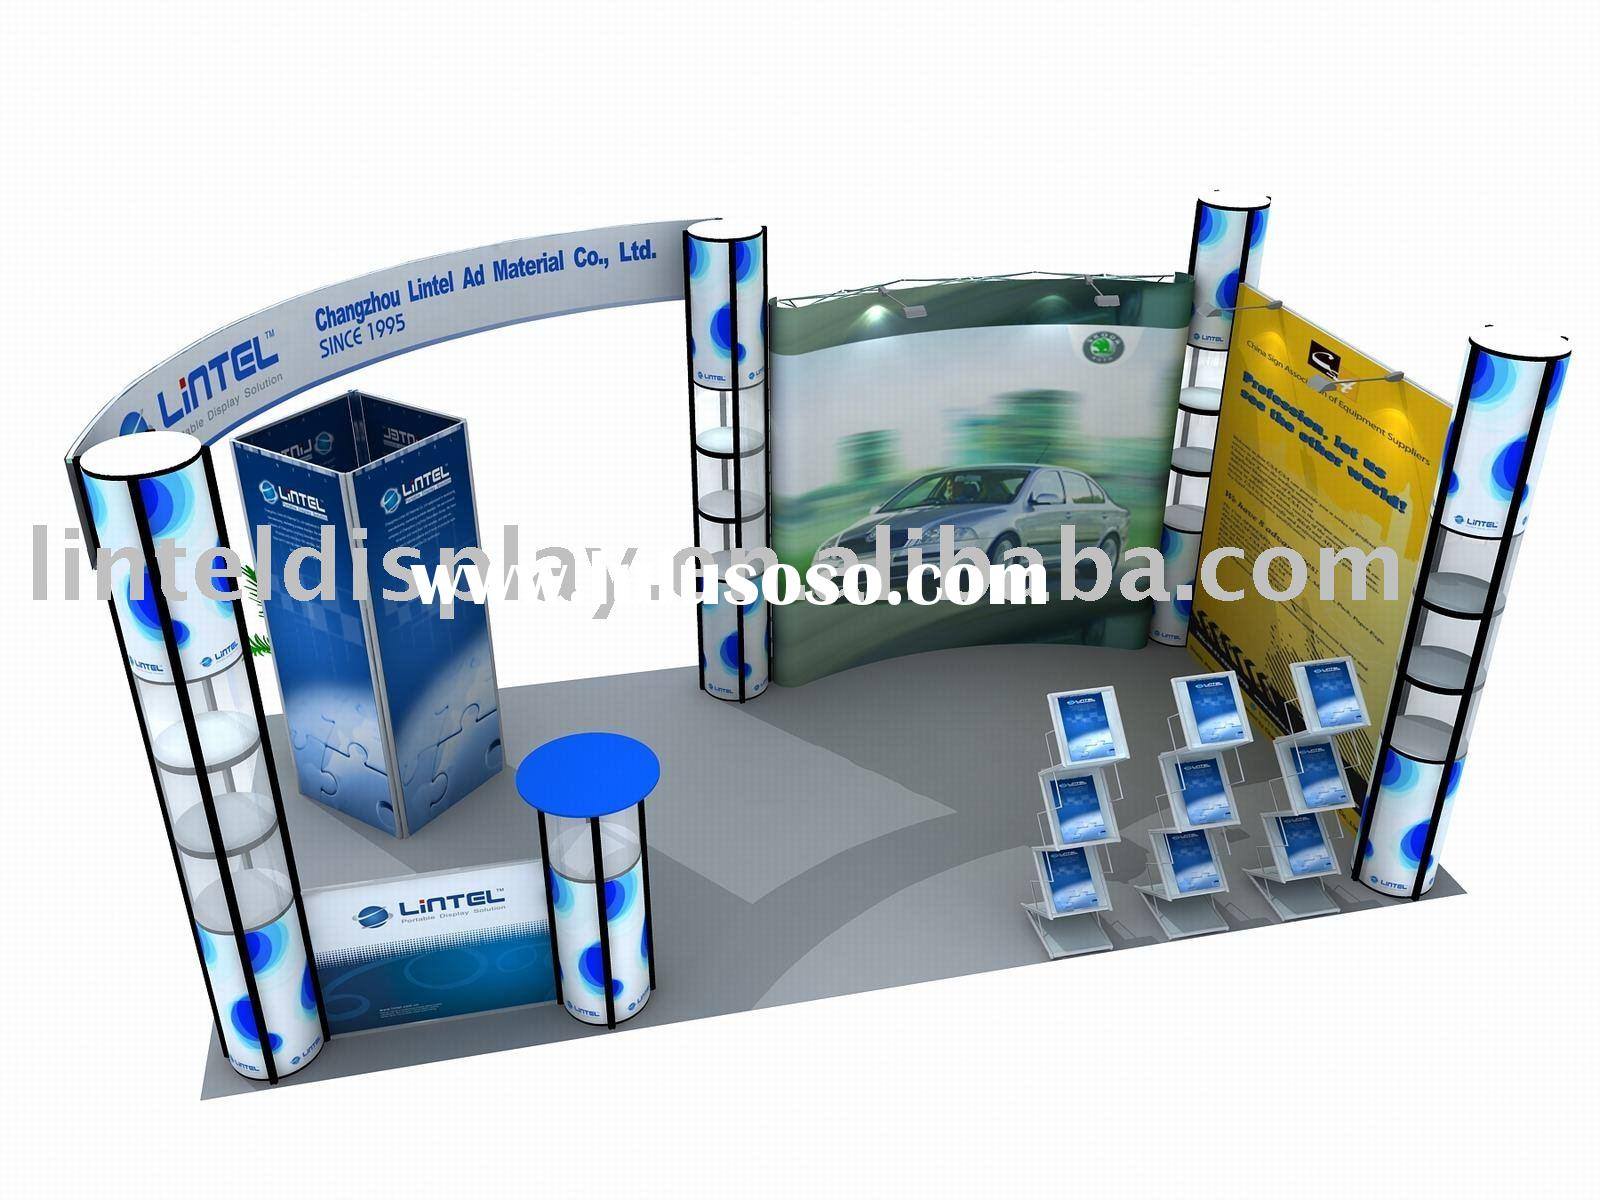 Exhibition Stand Design Price : Exhibition stand design concepts for sale price china